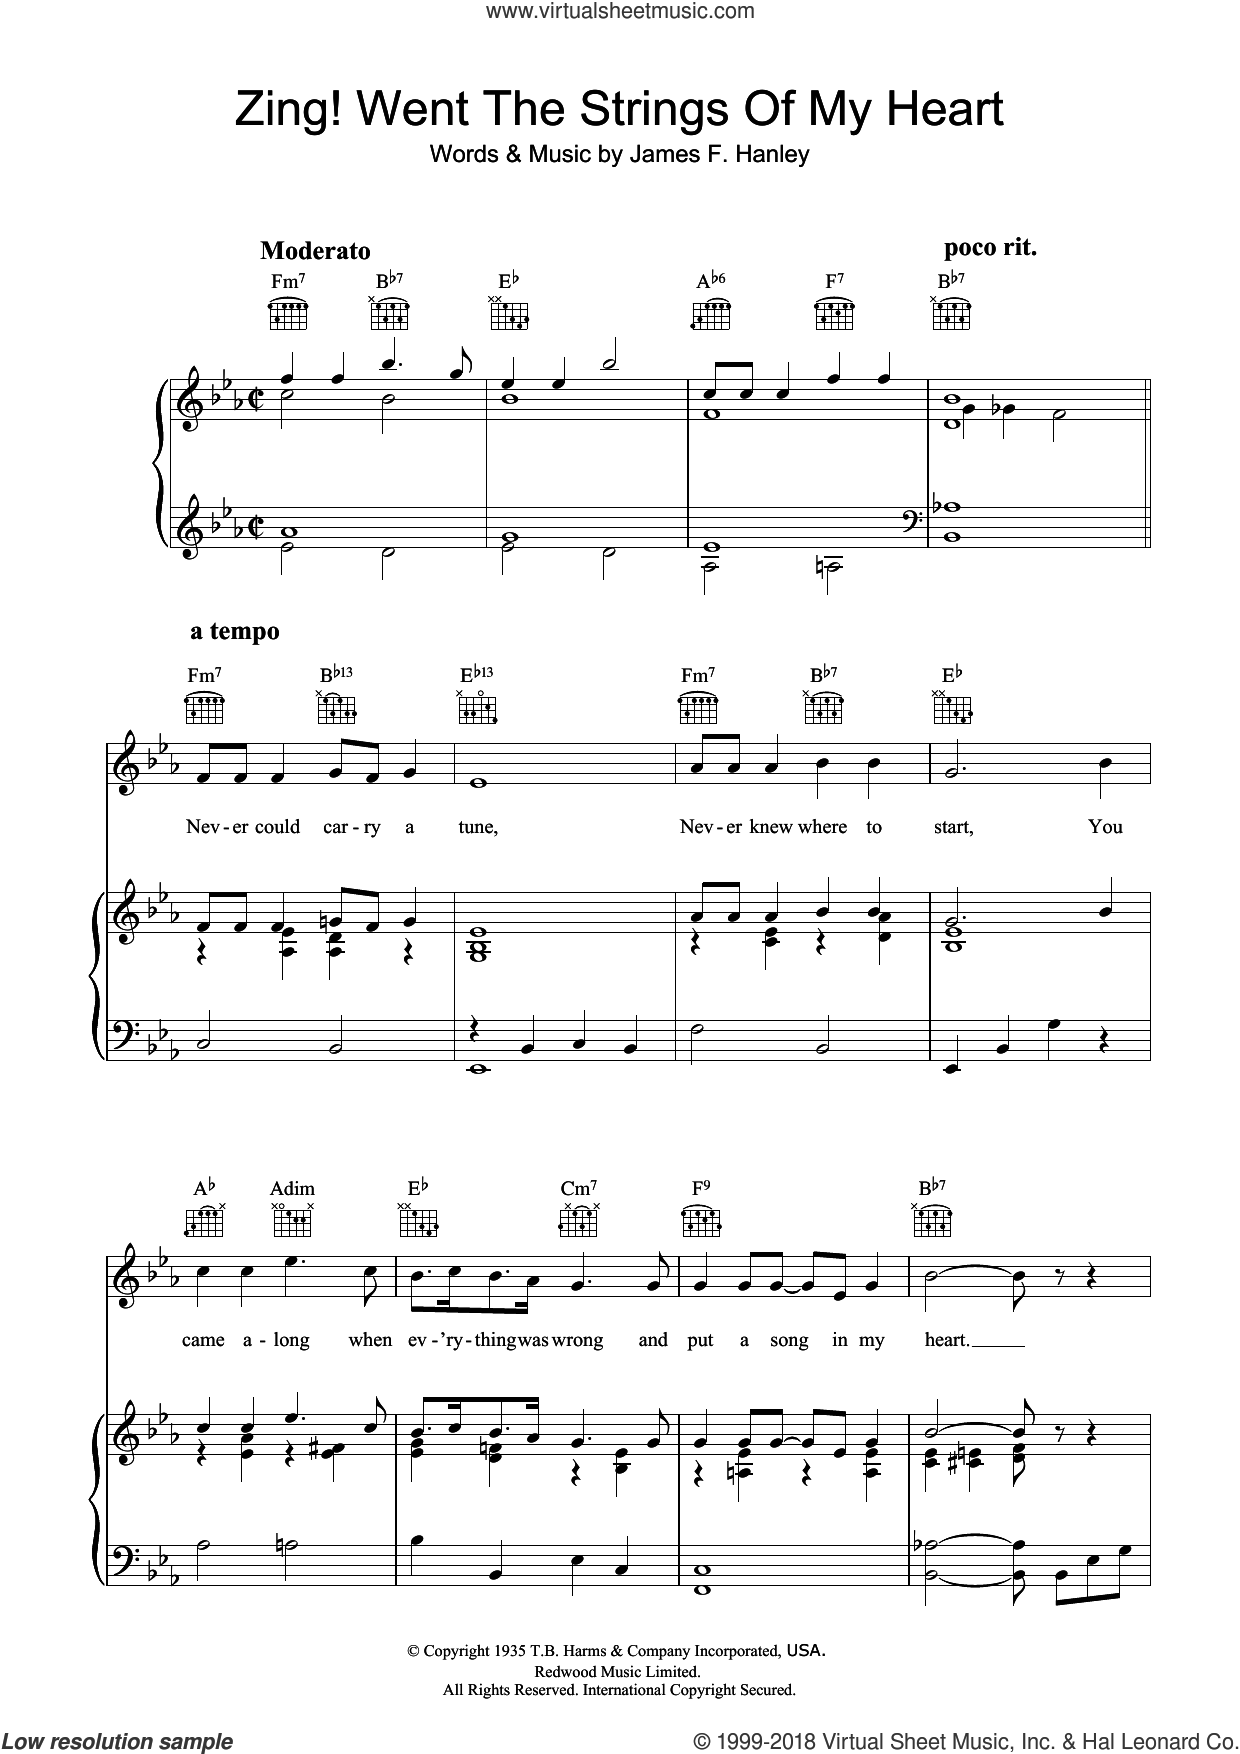 Zing! Went The Strings Of My Heart sheet music for voice, piano or guitar by James Hanley, intermediate skill level